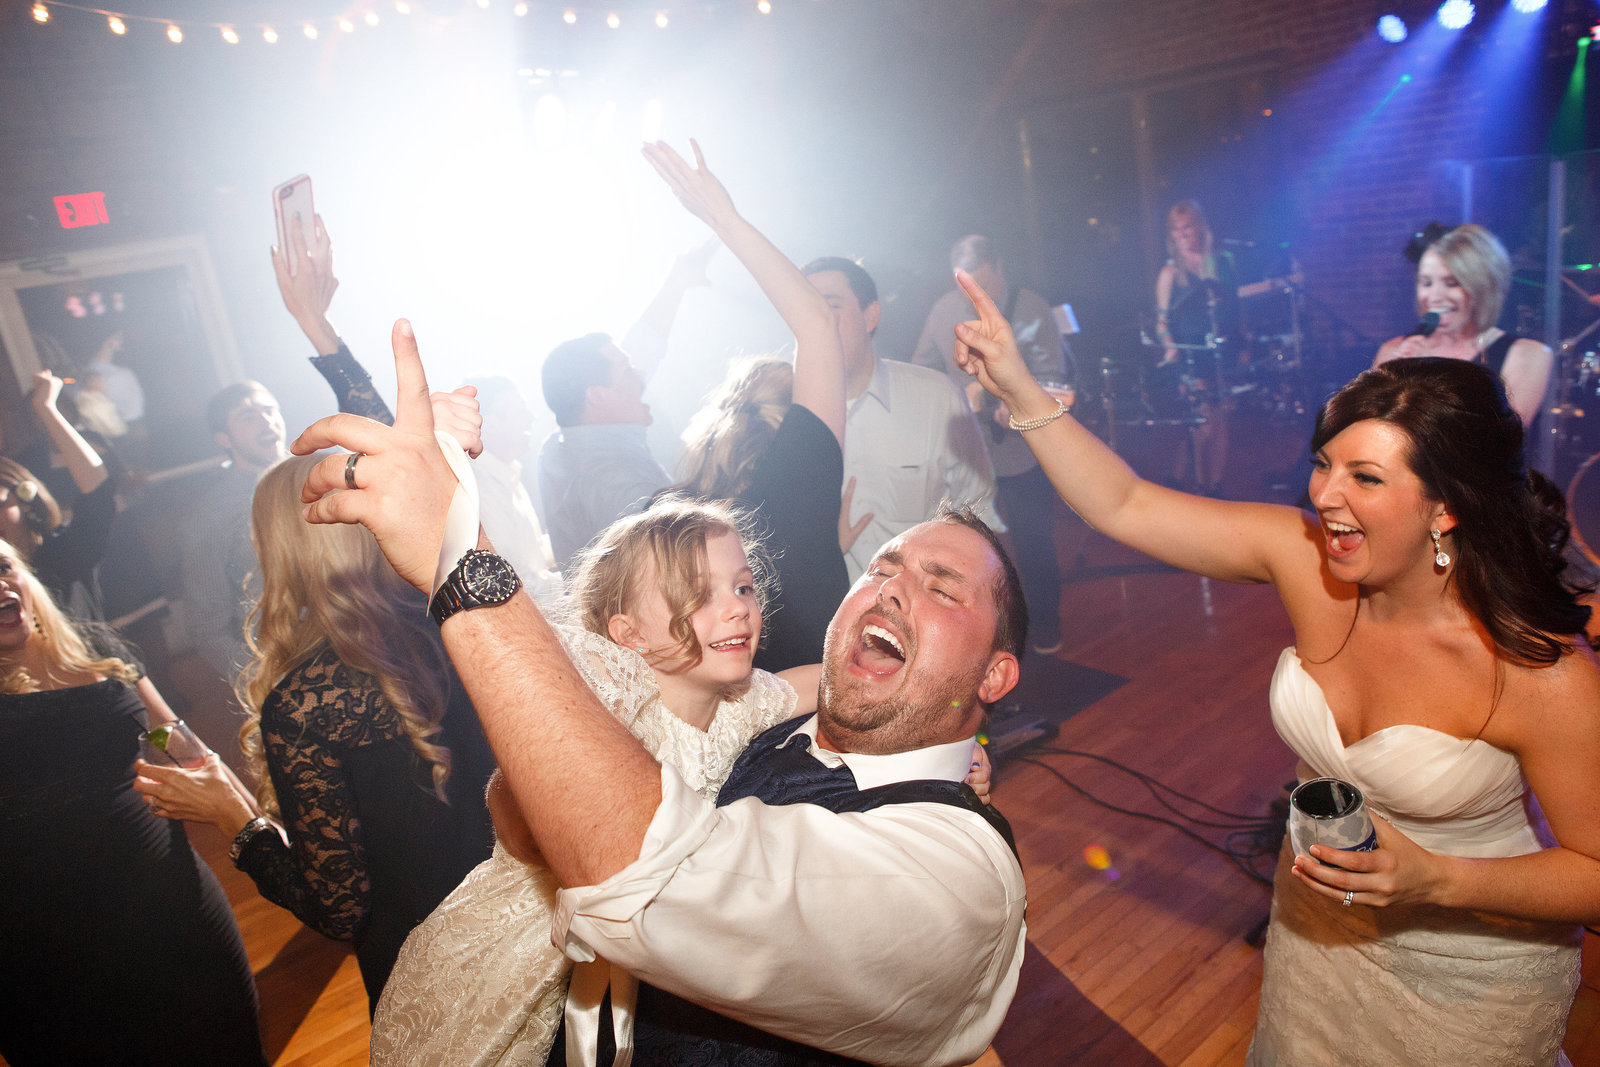 Cannery-One-Wedding-Reception-Groom-Air-Guitar